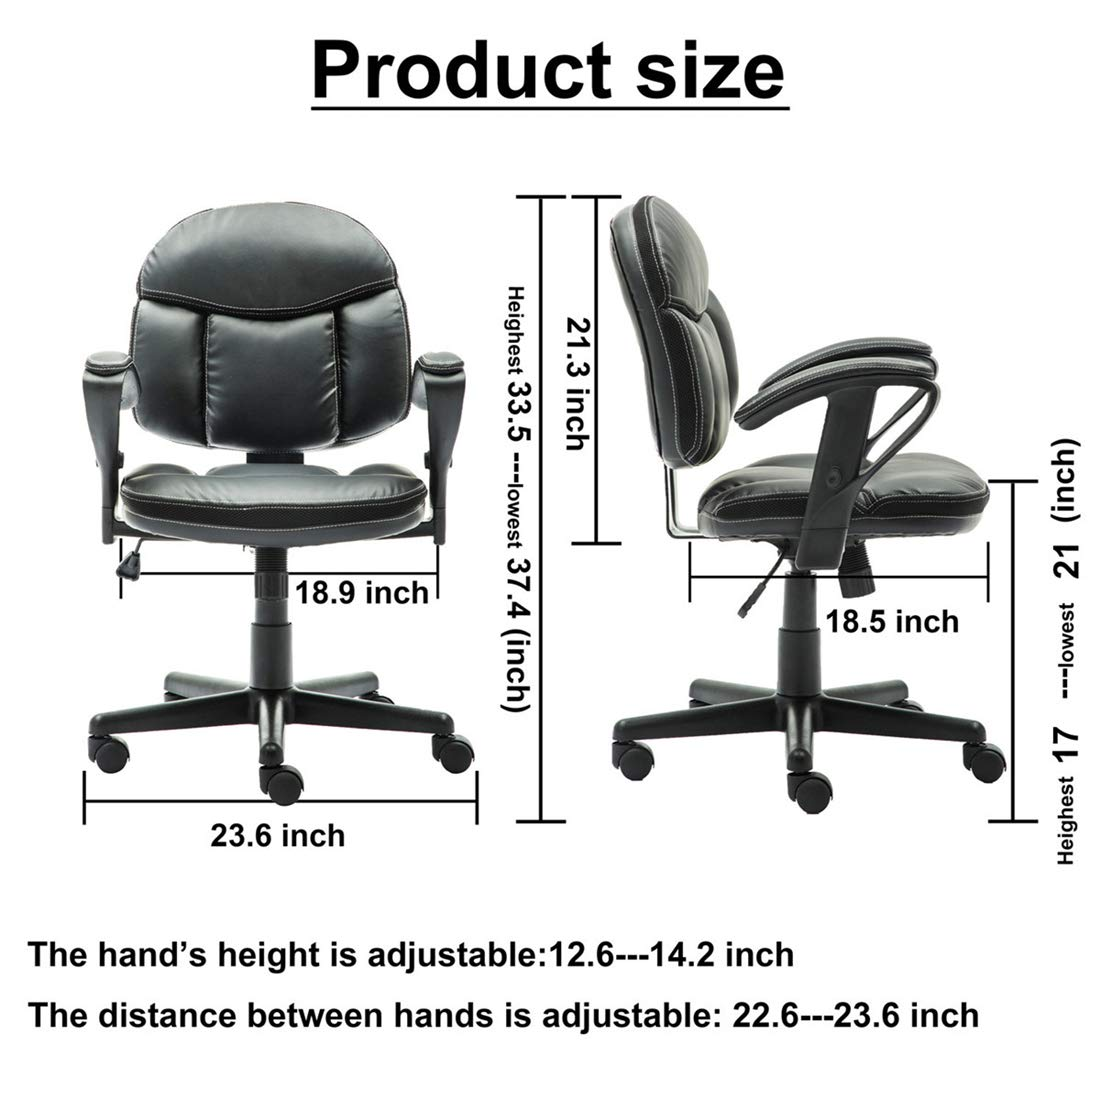 Irene House Comfortable Adult Teen's Swivel Adjustable PU Desk Chair,Ergonomic Mid-Back Student Computer Task Chair,Medium Adult's Home Office Chair(Black) by Irene House (Image #6)